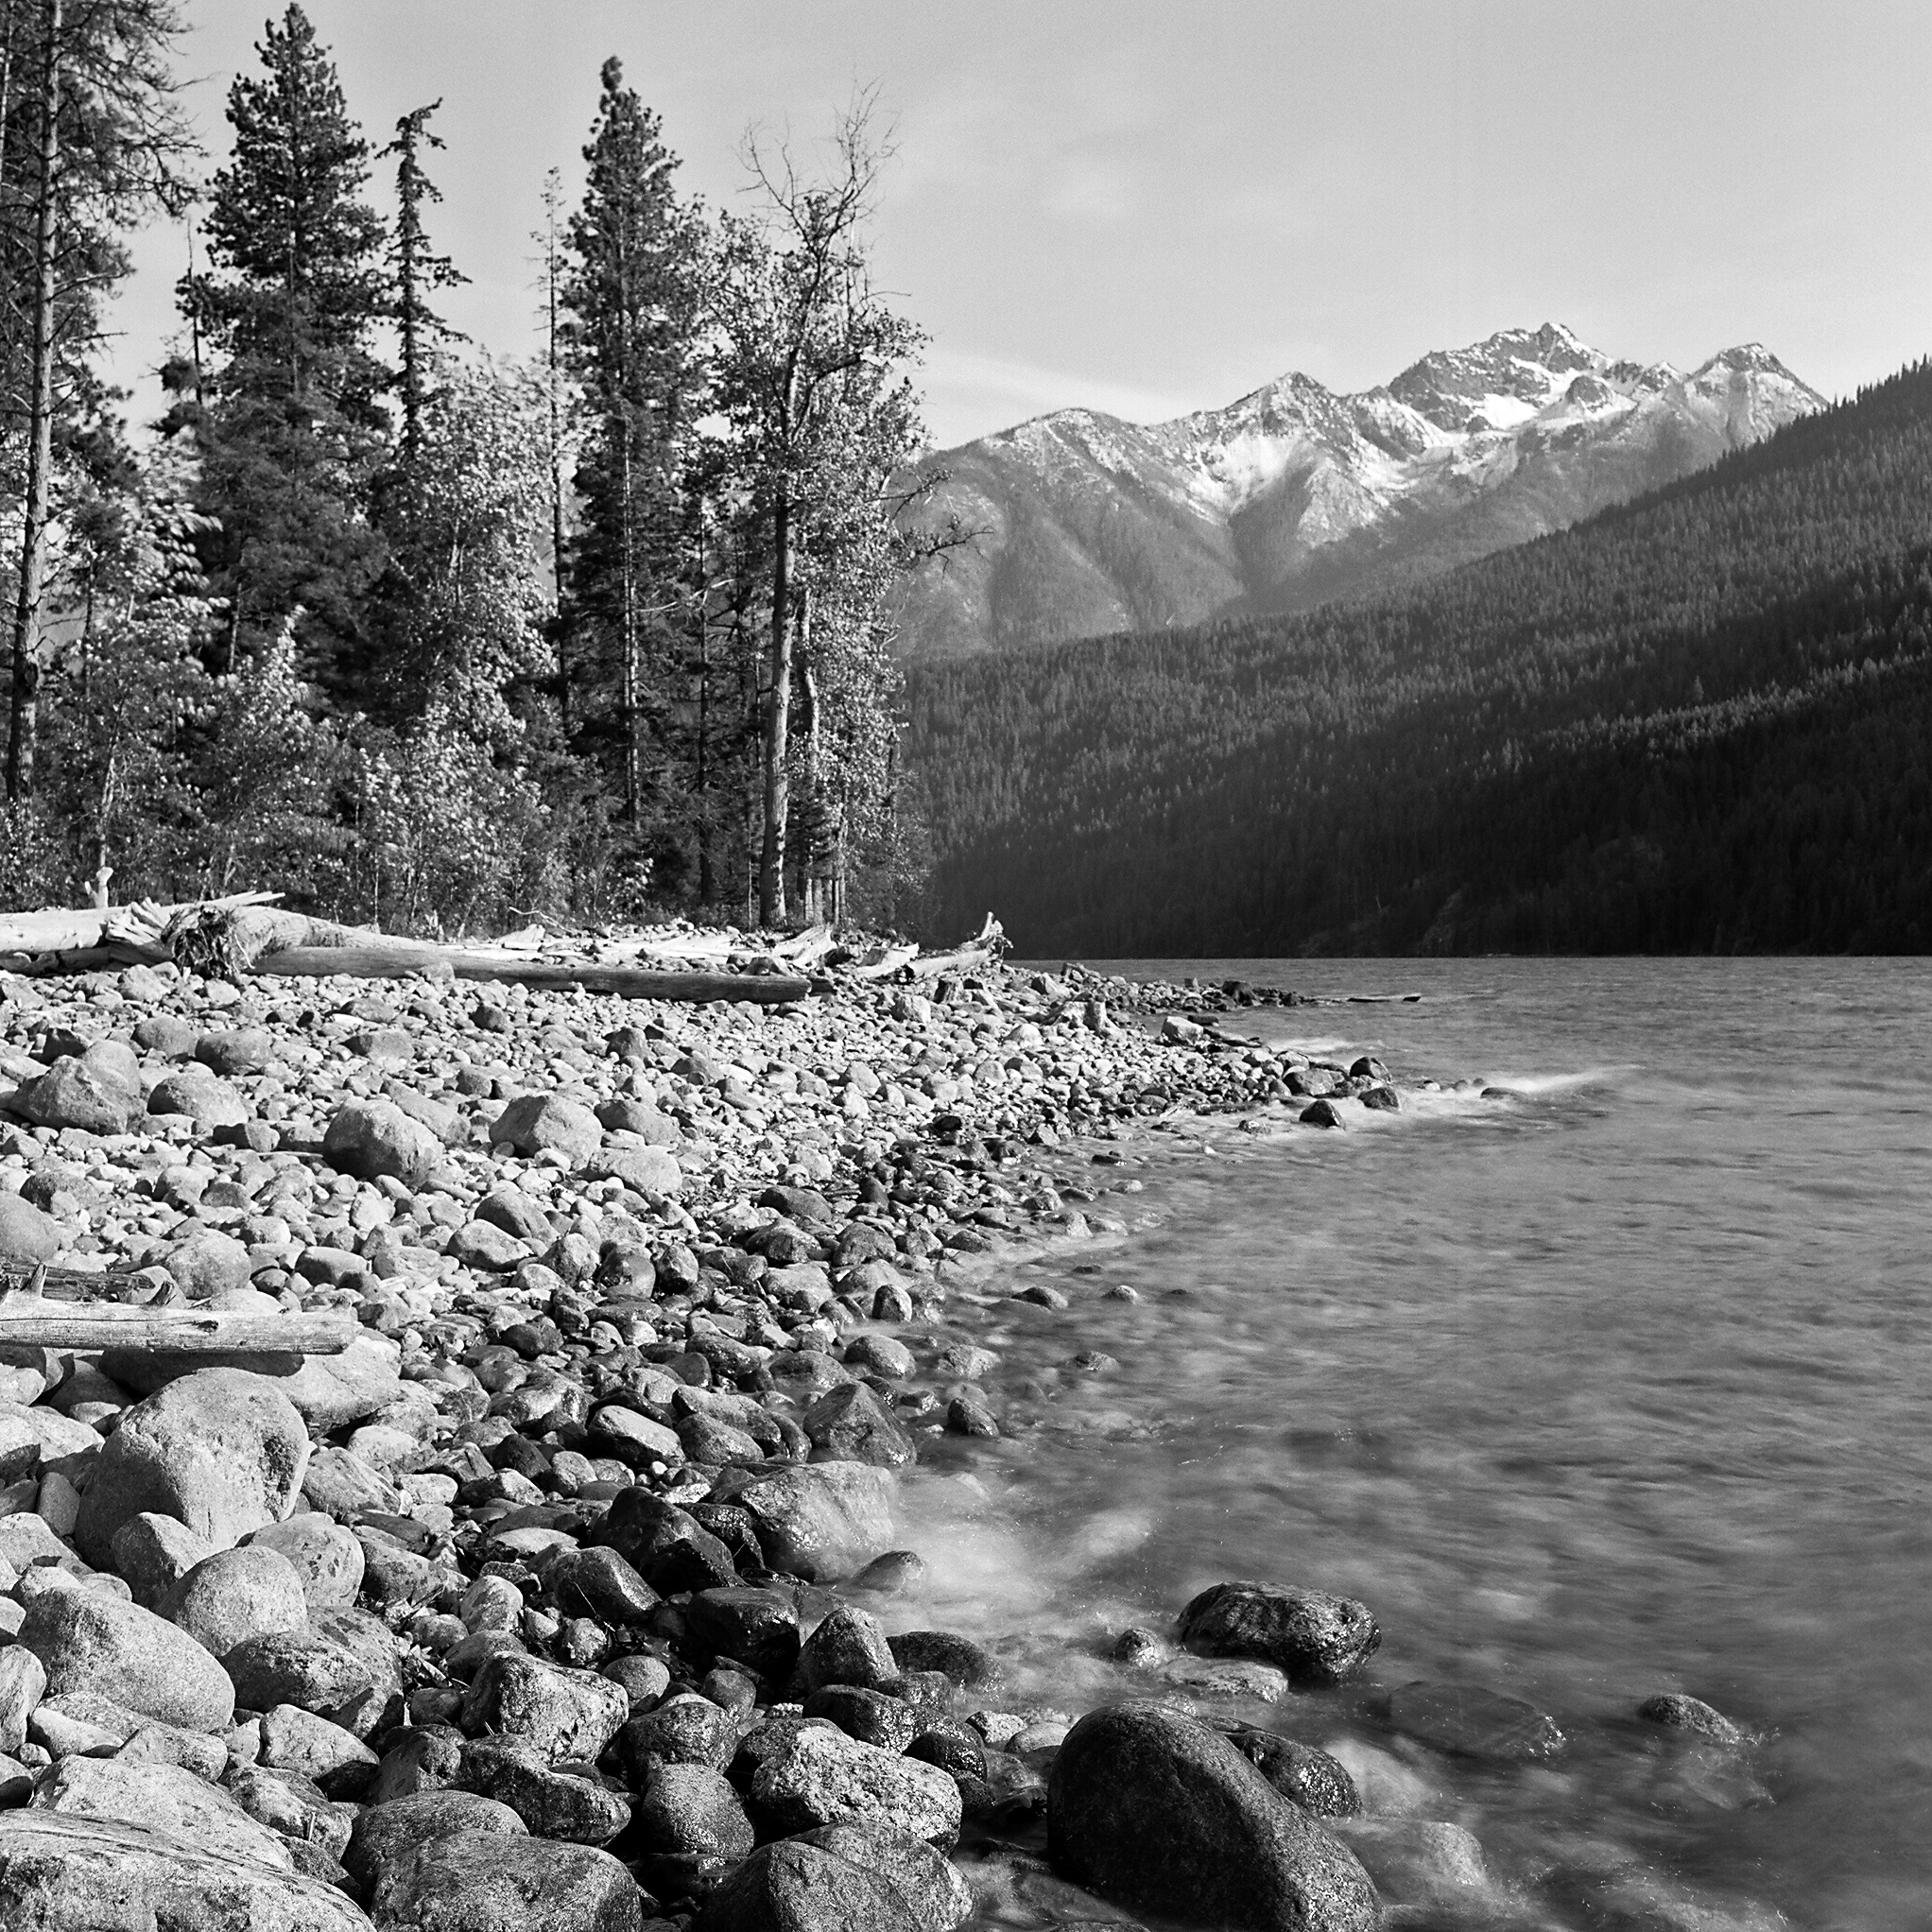 Moore Point, Lake Chelan-Sawtooth Wilderness, Washington © 2014.  Image: Rolleiflex 2.8 F + Zeiss Planar 1:2.8/80mm.